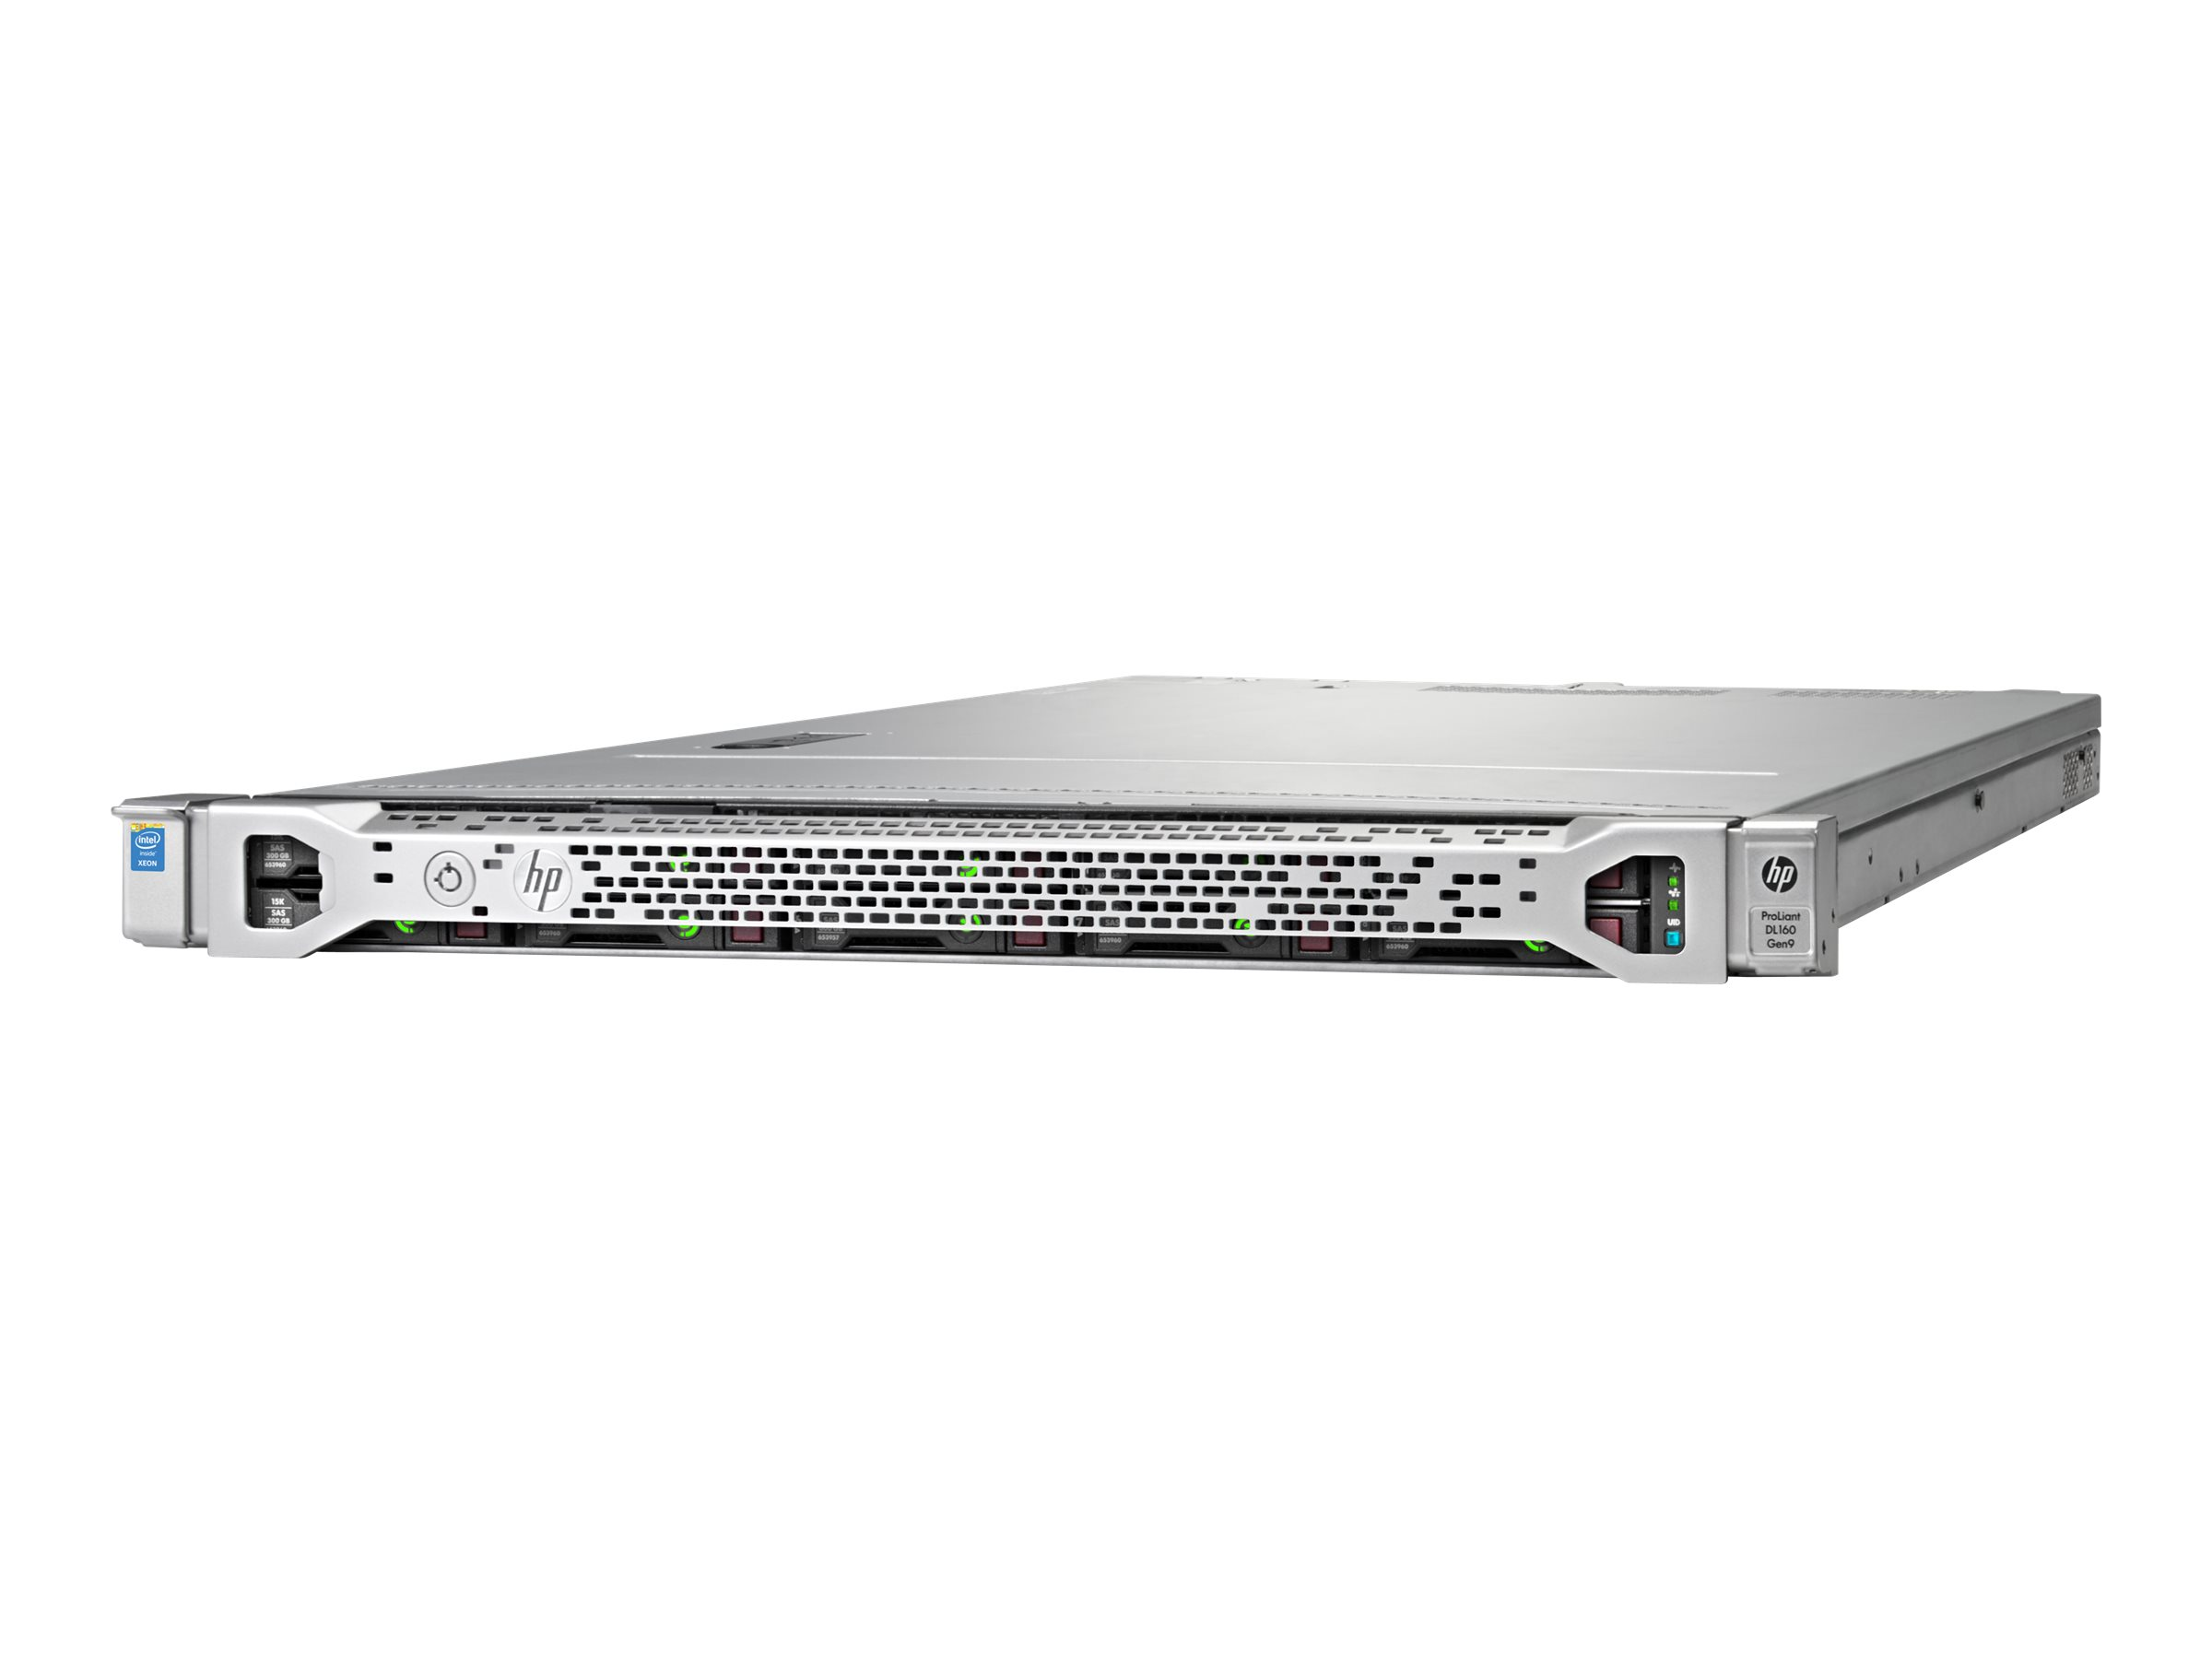 HPE ProLiant DL160 Gen9 - Server - Rack-Montage - 1U - zweiweg - 1 x Xeon E5-2620V4 / 2.1 GHz